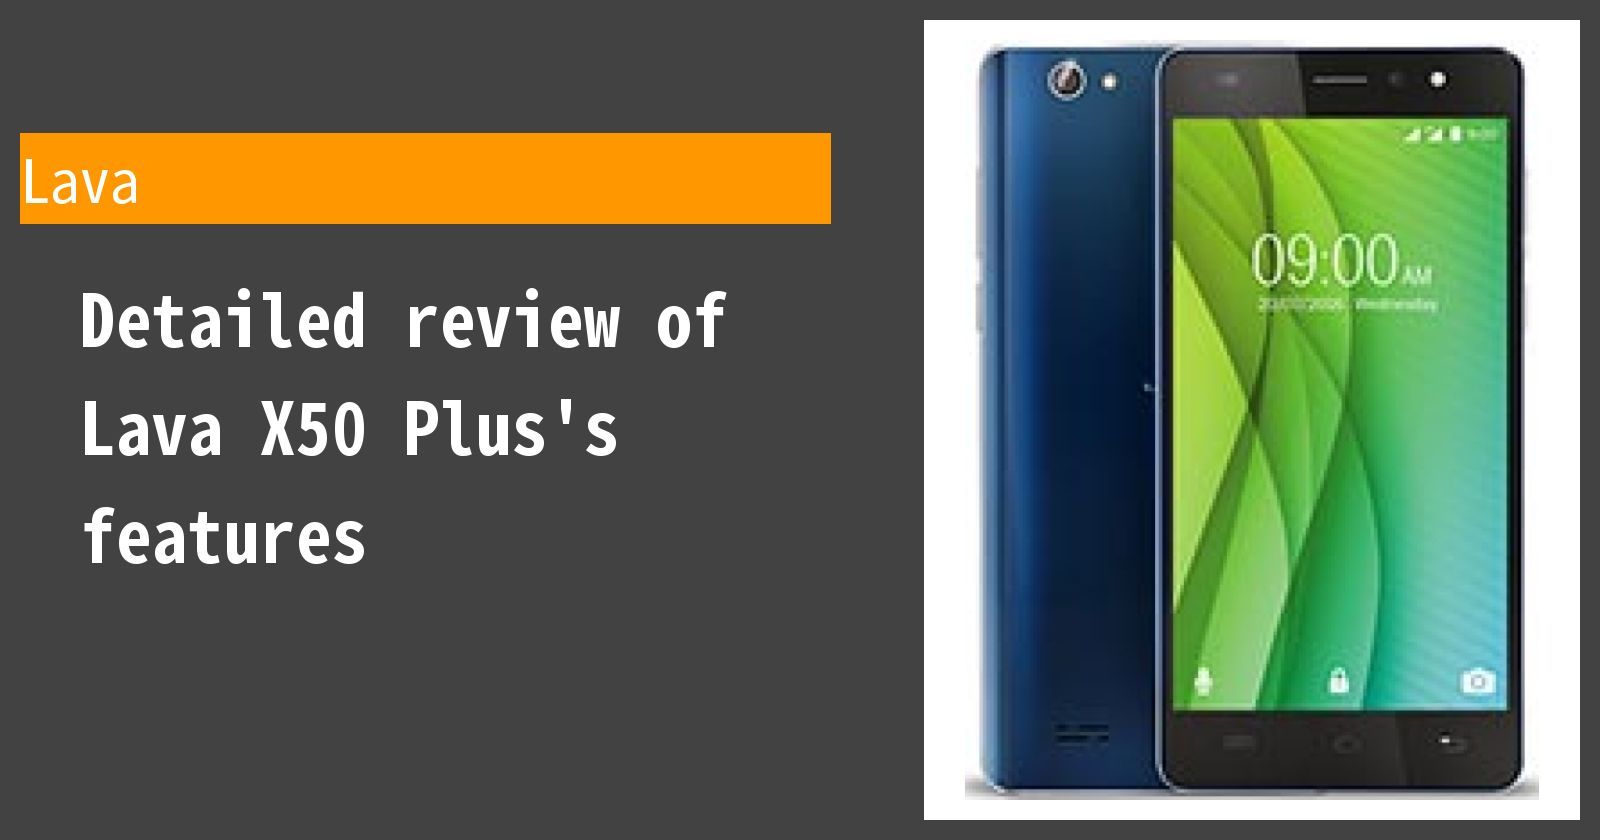 Detailed review of Lava X50 Plus's features